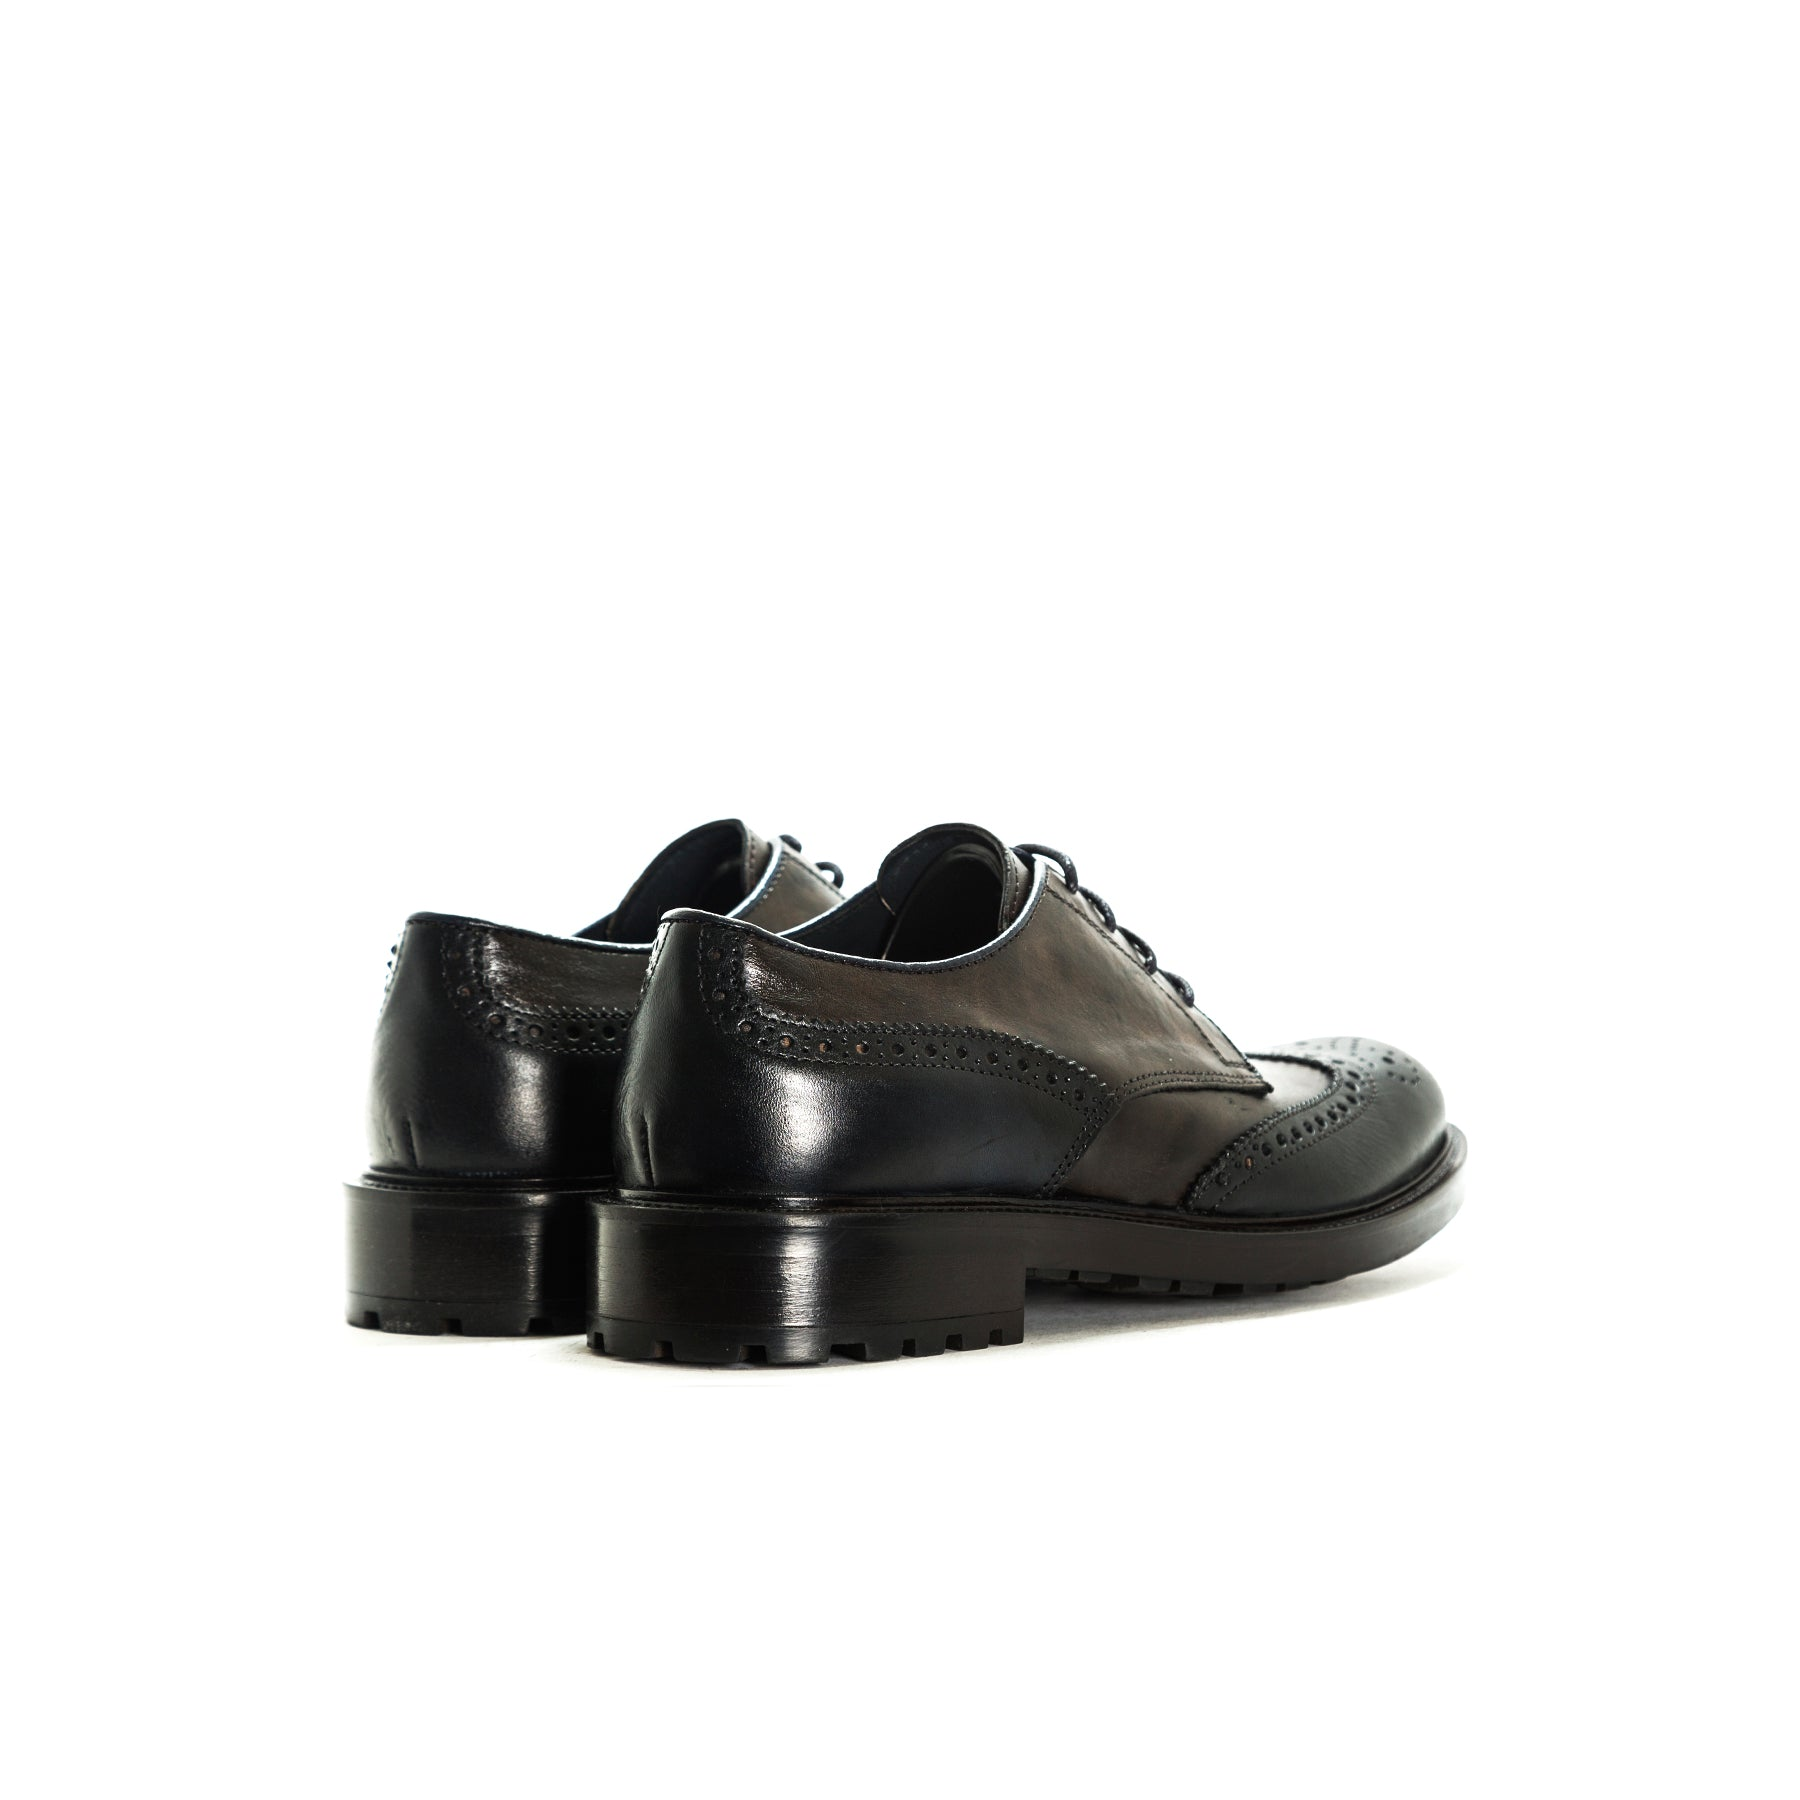 Chaplin Brown/Black Leather Shoes